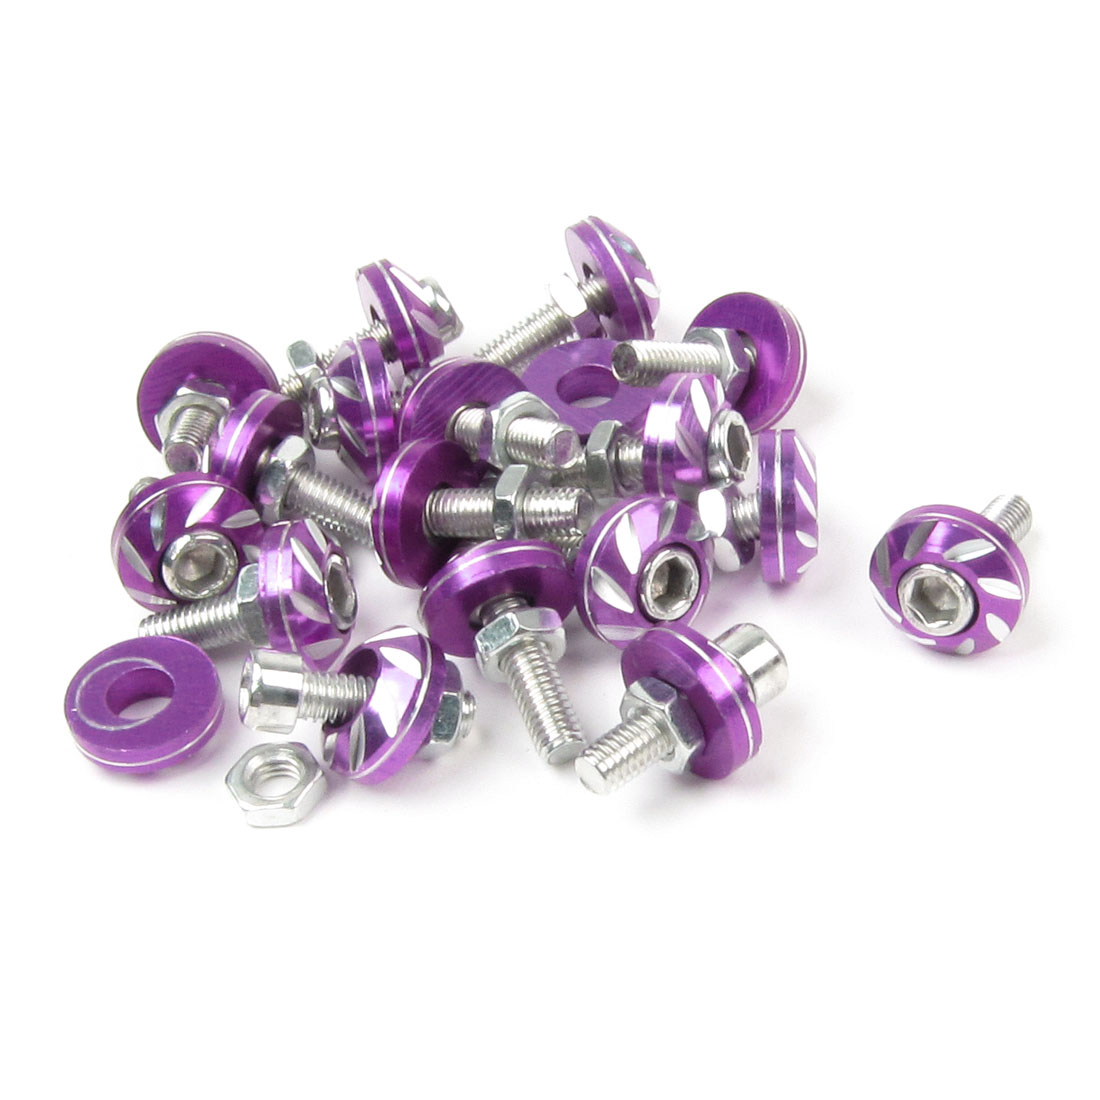 Car Auto License Plate Bolts Screws Decoration Purple Silver Tone 20pcs